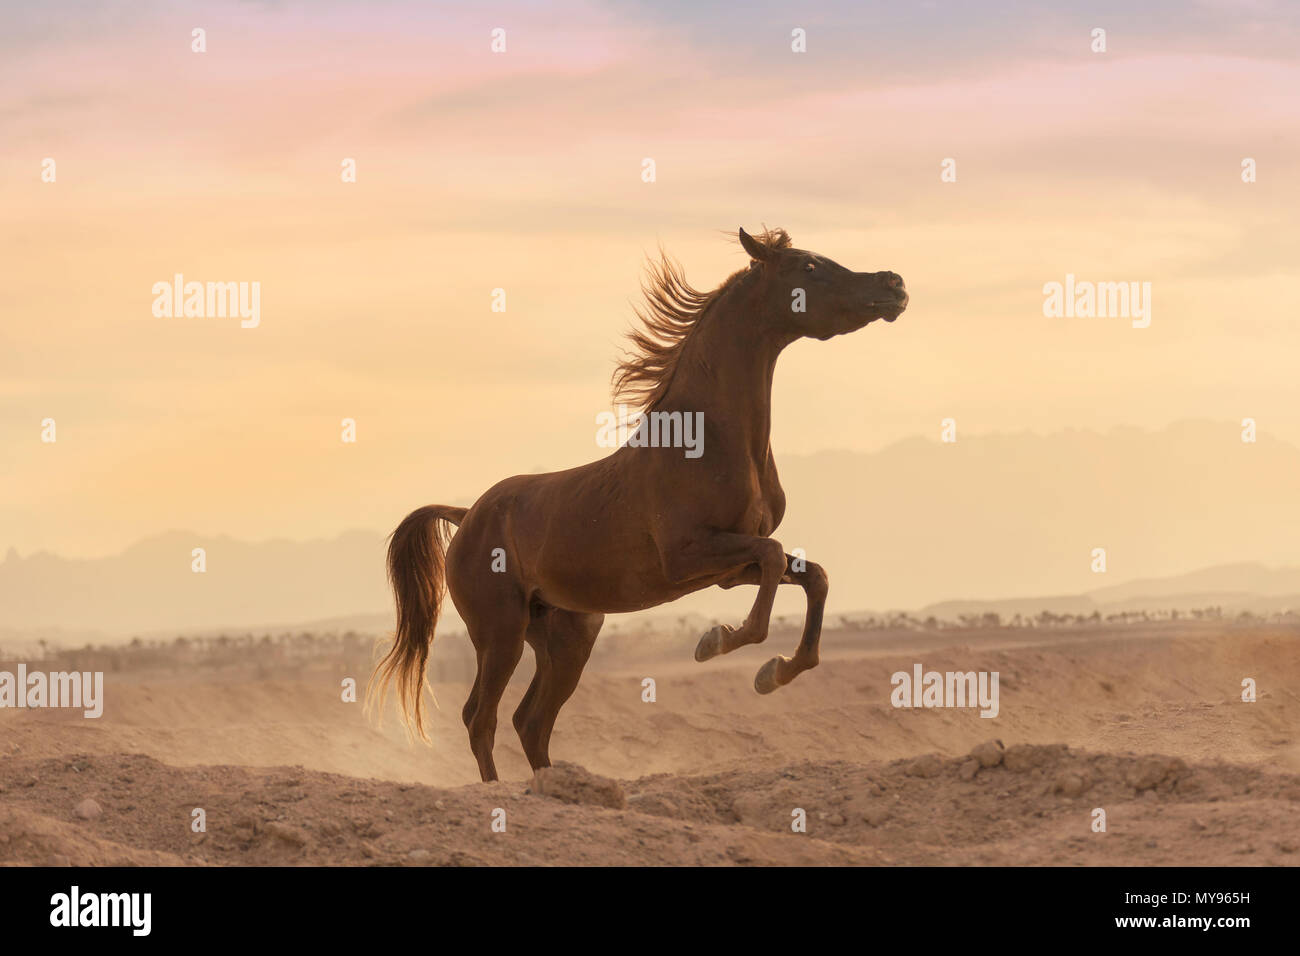 Arabian Horse. Chestnut stallion rearing in the desert at sunset. Egypt - Stock Image